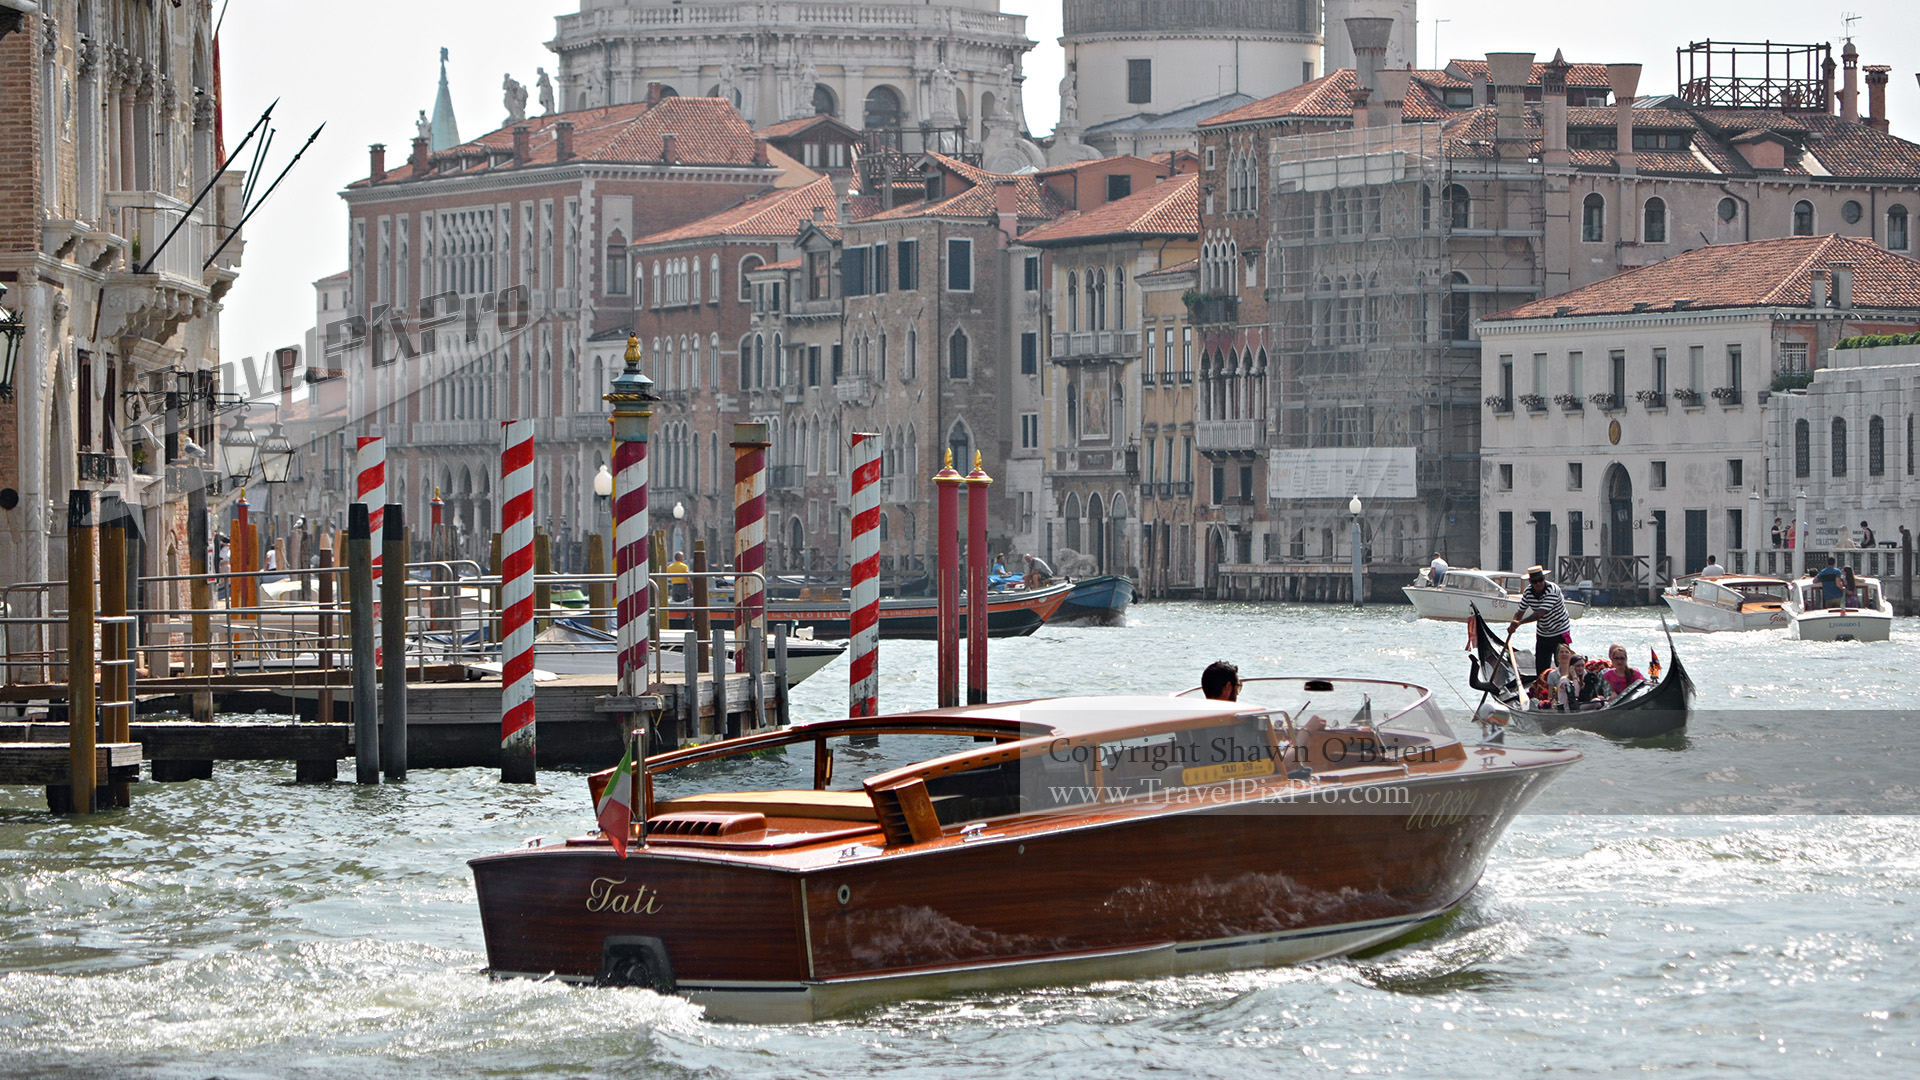 Life on the Grand Canal Venice